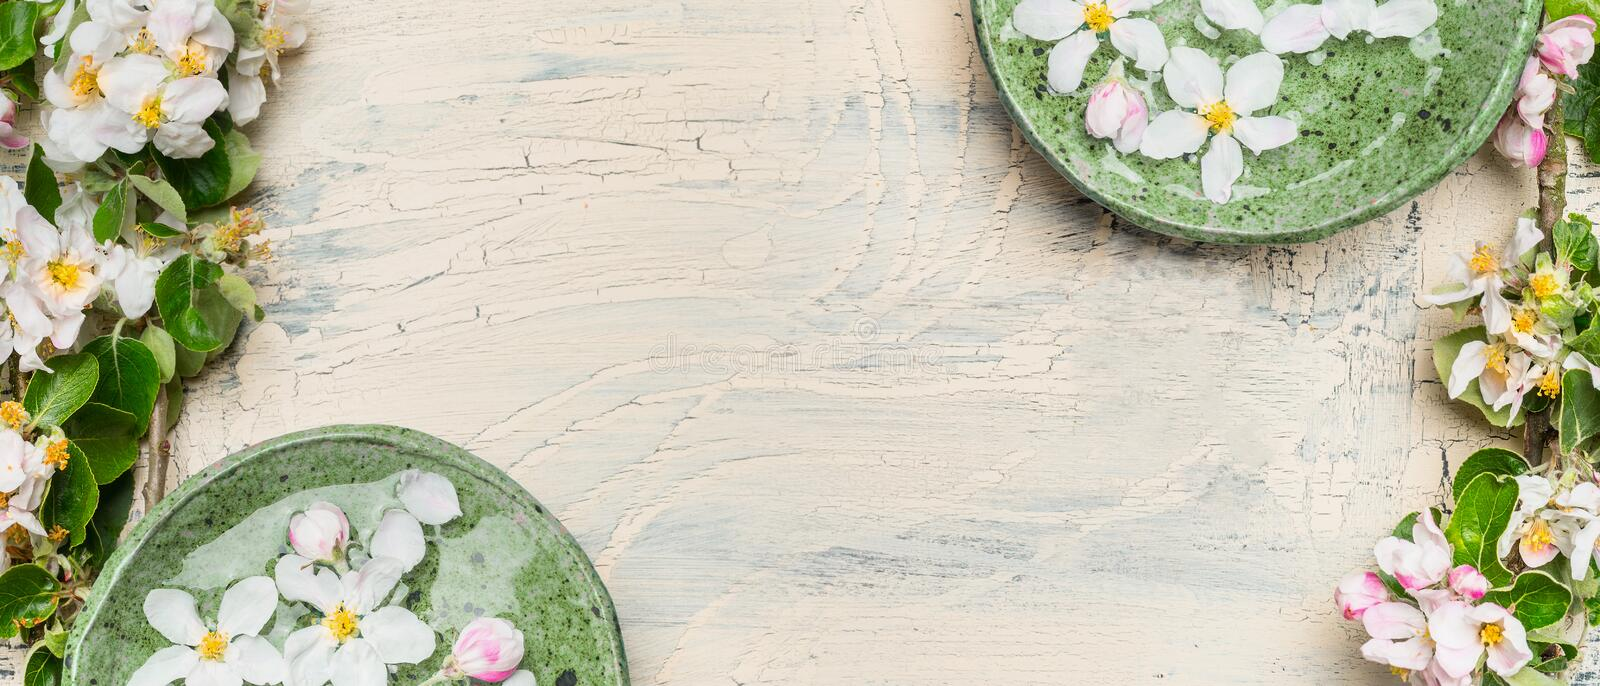 Green water bowls with white blossom on light shabby chic wooden background. royalty free stock photo